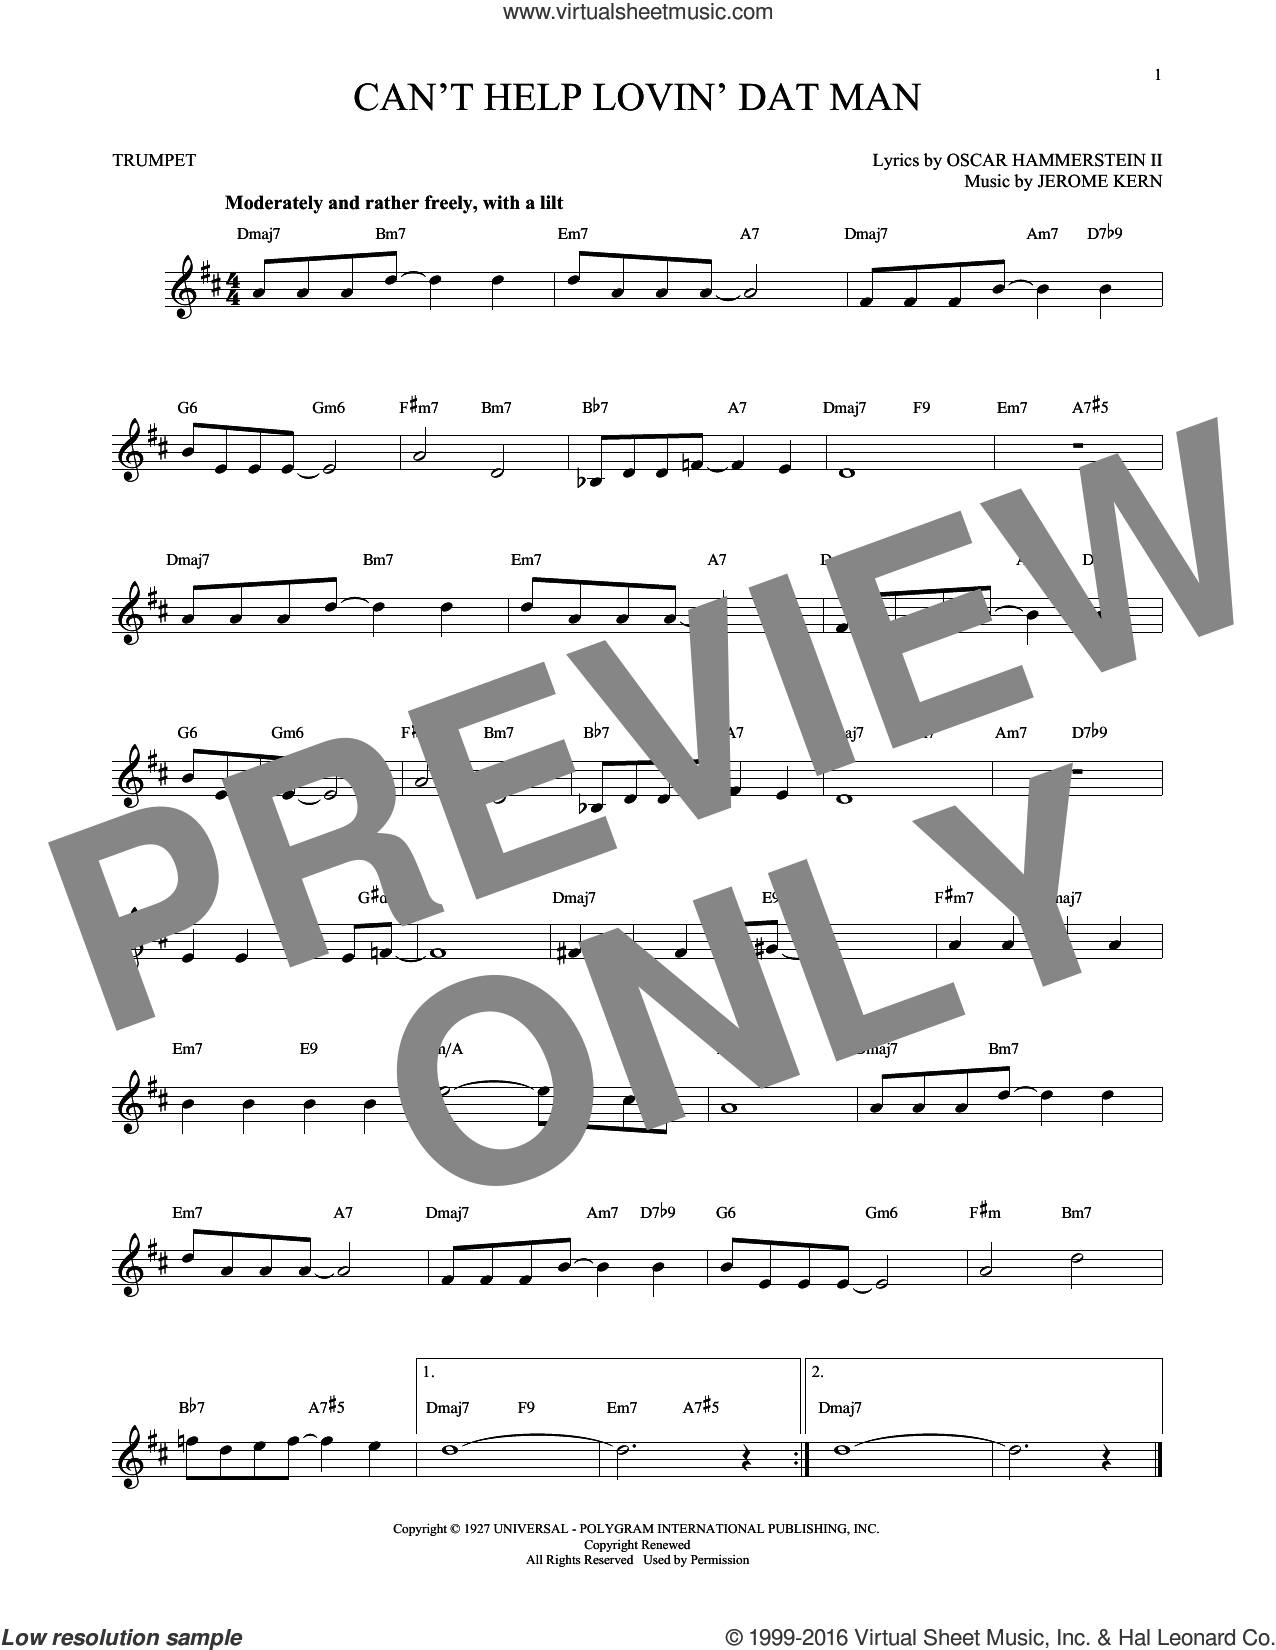 Can't Help Lovin' Dat Man sheet music for trumpet solo by Oscar II Hammerstein, Helen Morgan and Jerome Kern. Score Image Preview.